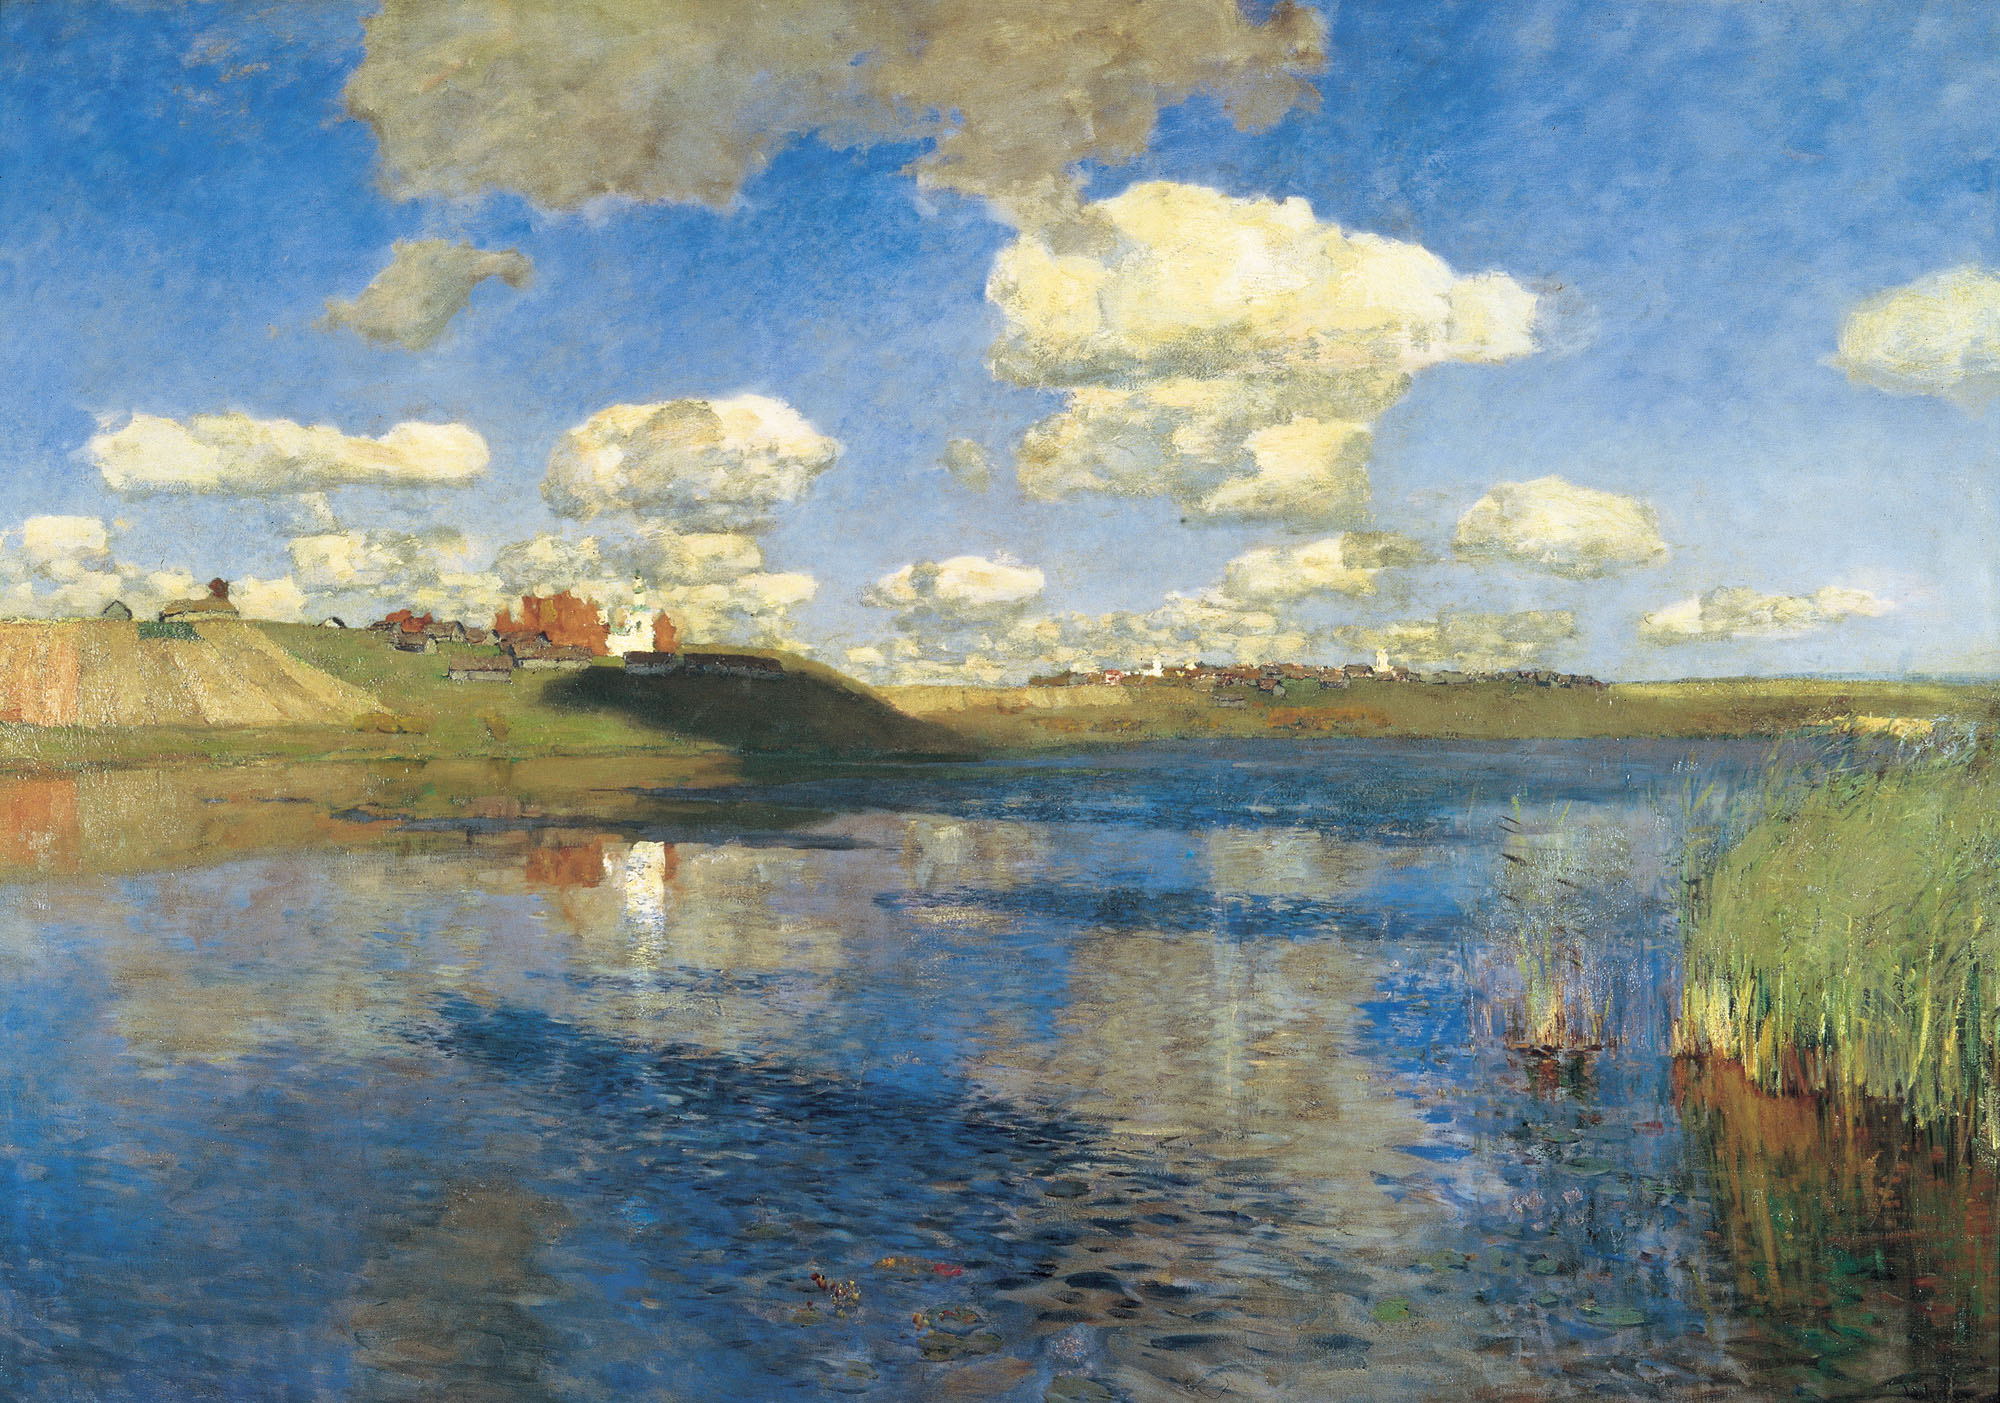 http://uploads1.wikipaintings.org/images/isaac-levitan/lake-rus.jpg